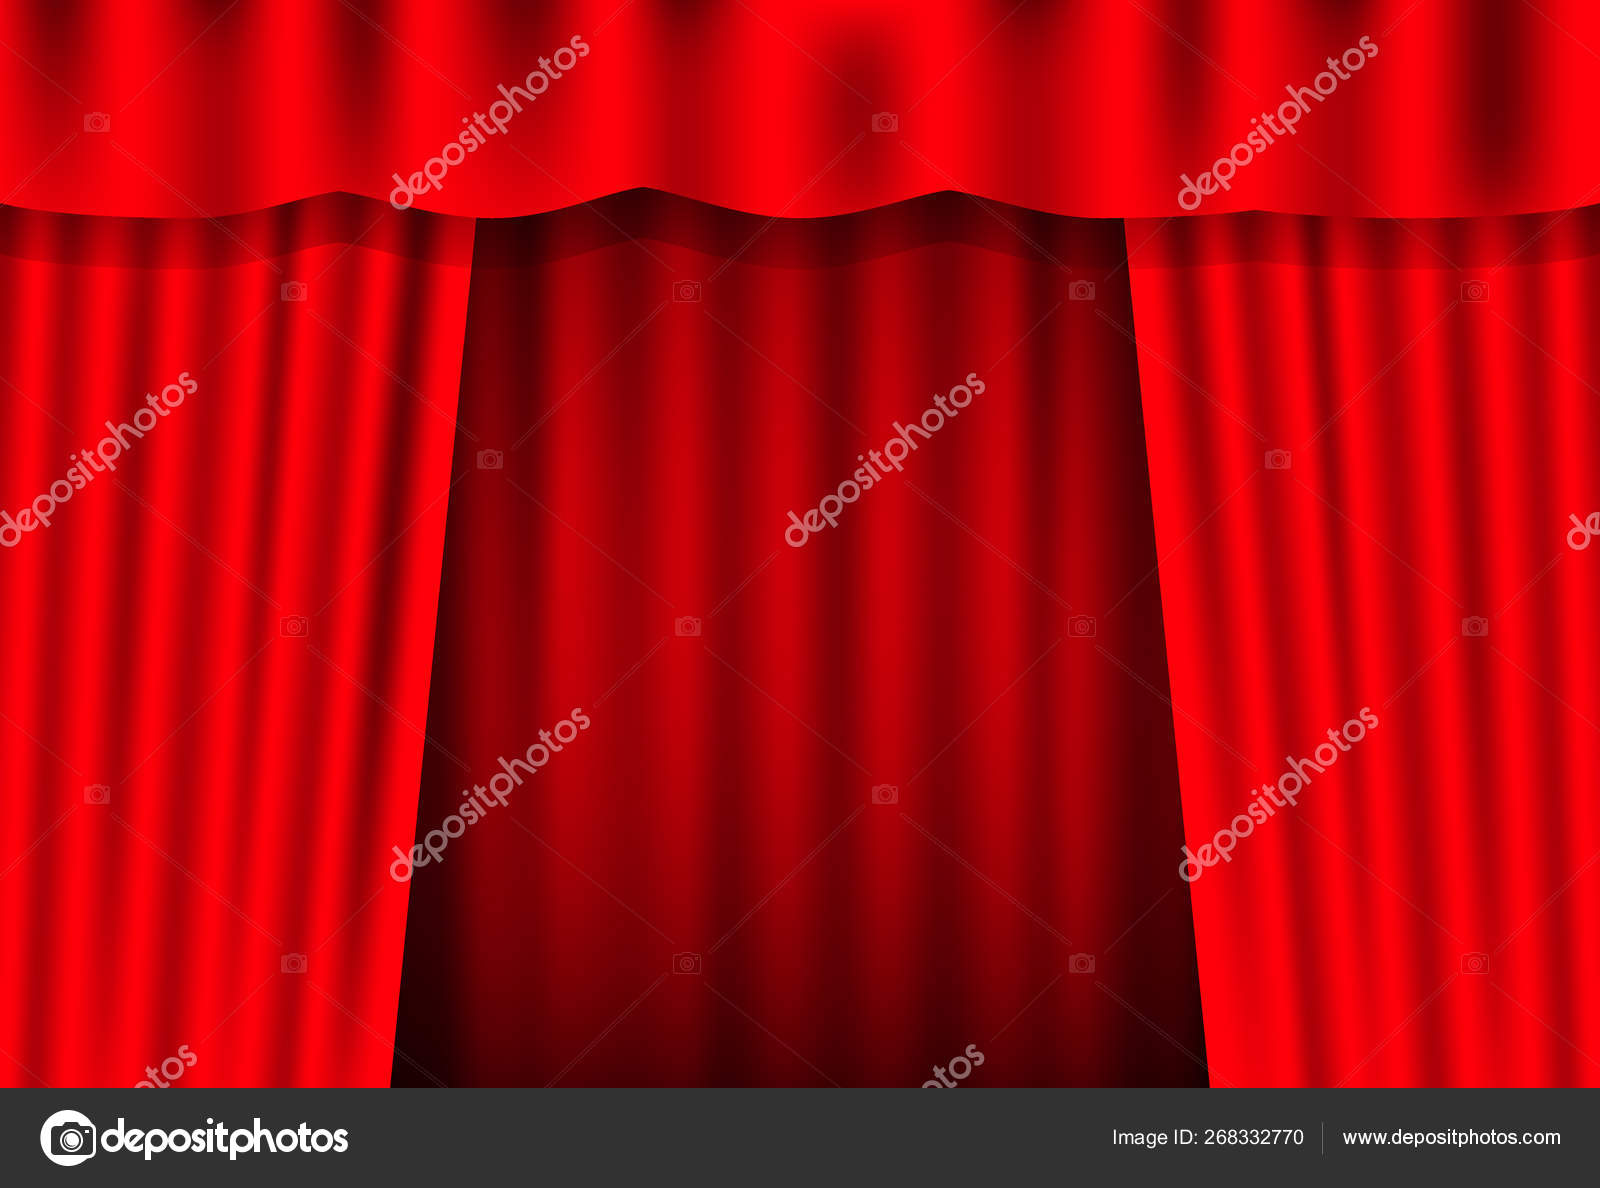 Entertainment Curtains Background For Movies Beautiful Red Theatre Folded Curtain Drapes On Black Stage Vector Stock Illustration Image By C Appleboy 268332770